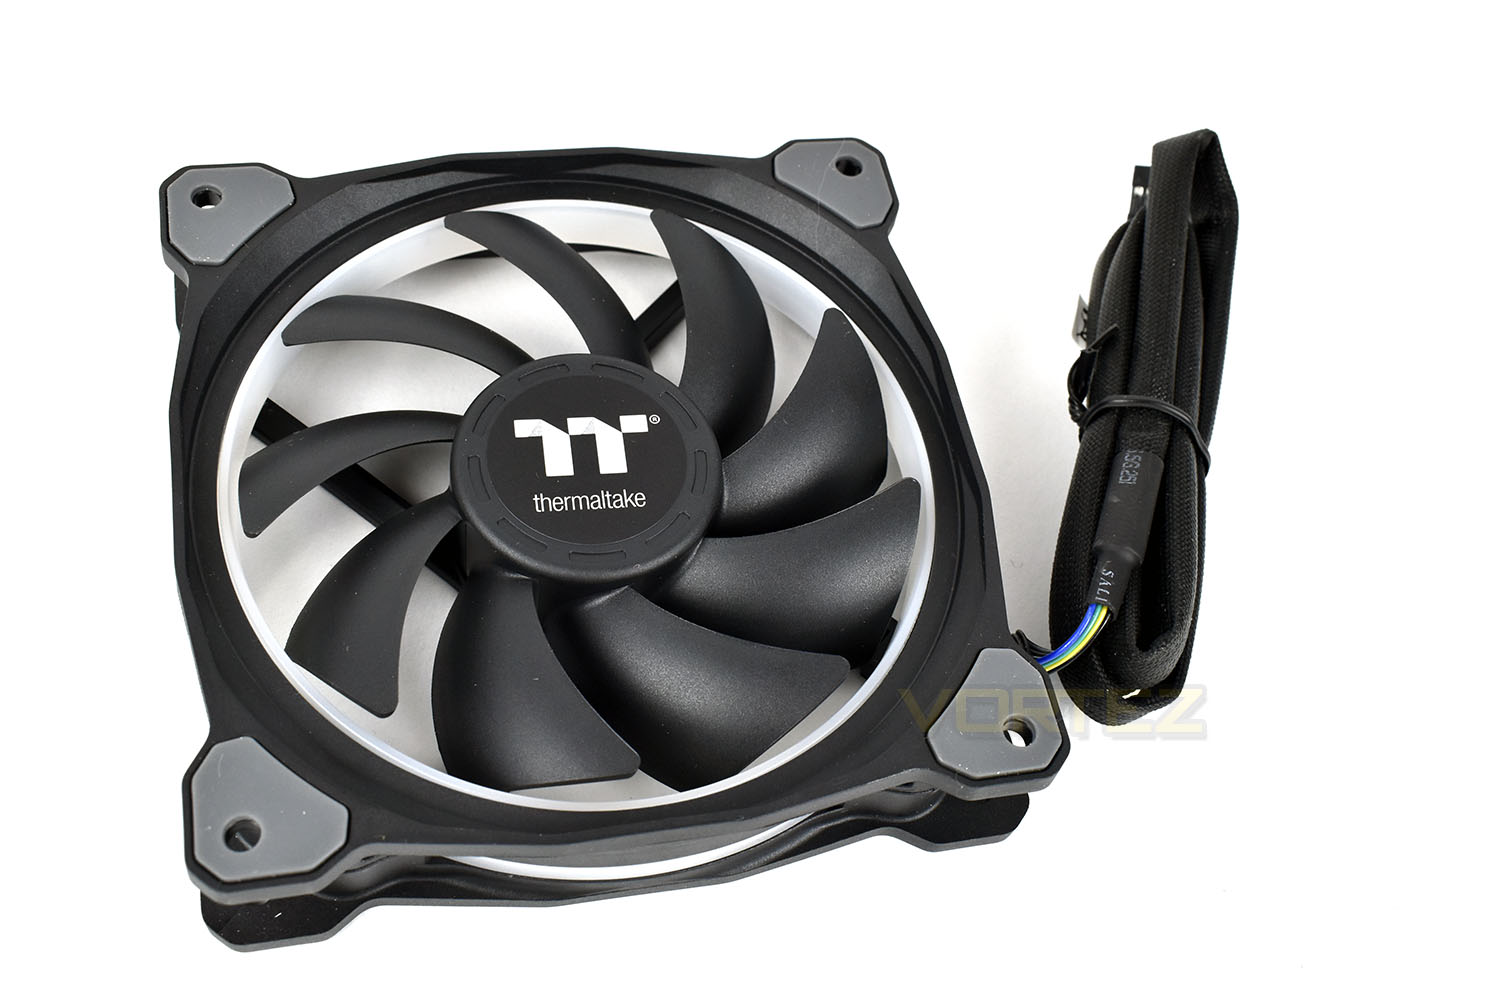 Thermaltake Riing Plus 12 Tt Premium Edition Rgb Fan Triple Pack Led 3 Fans The Cable Is Braided From End To And Measures Roughly 900mm In Length Thats Handy For Larger Cases But Anyone With A Smaller Chassis Might Struggle